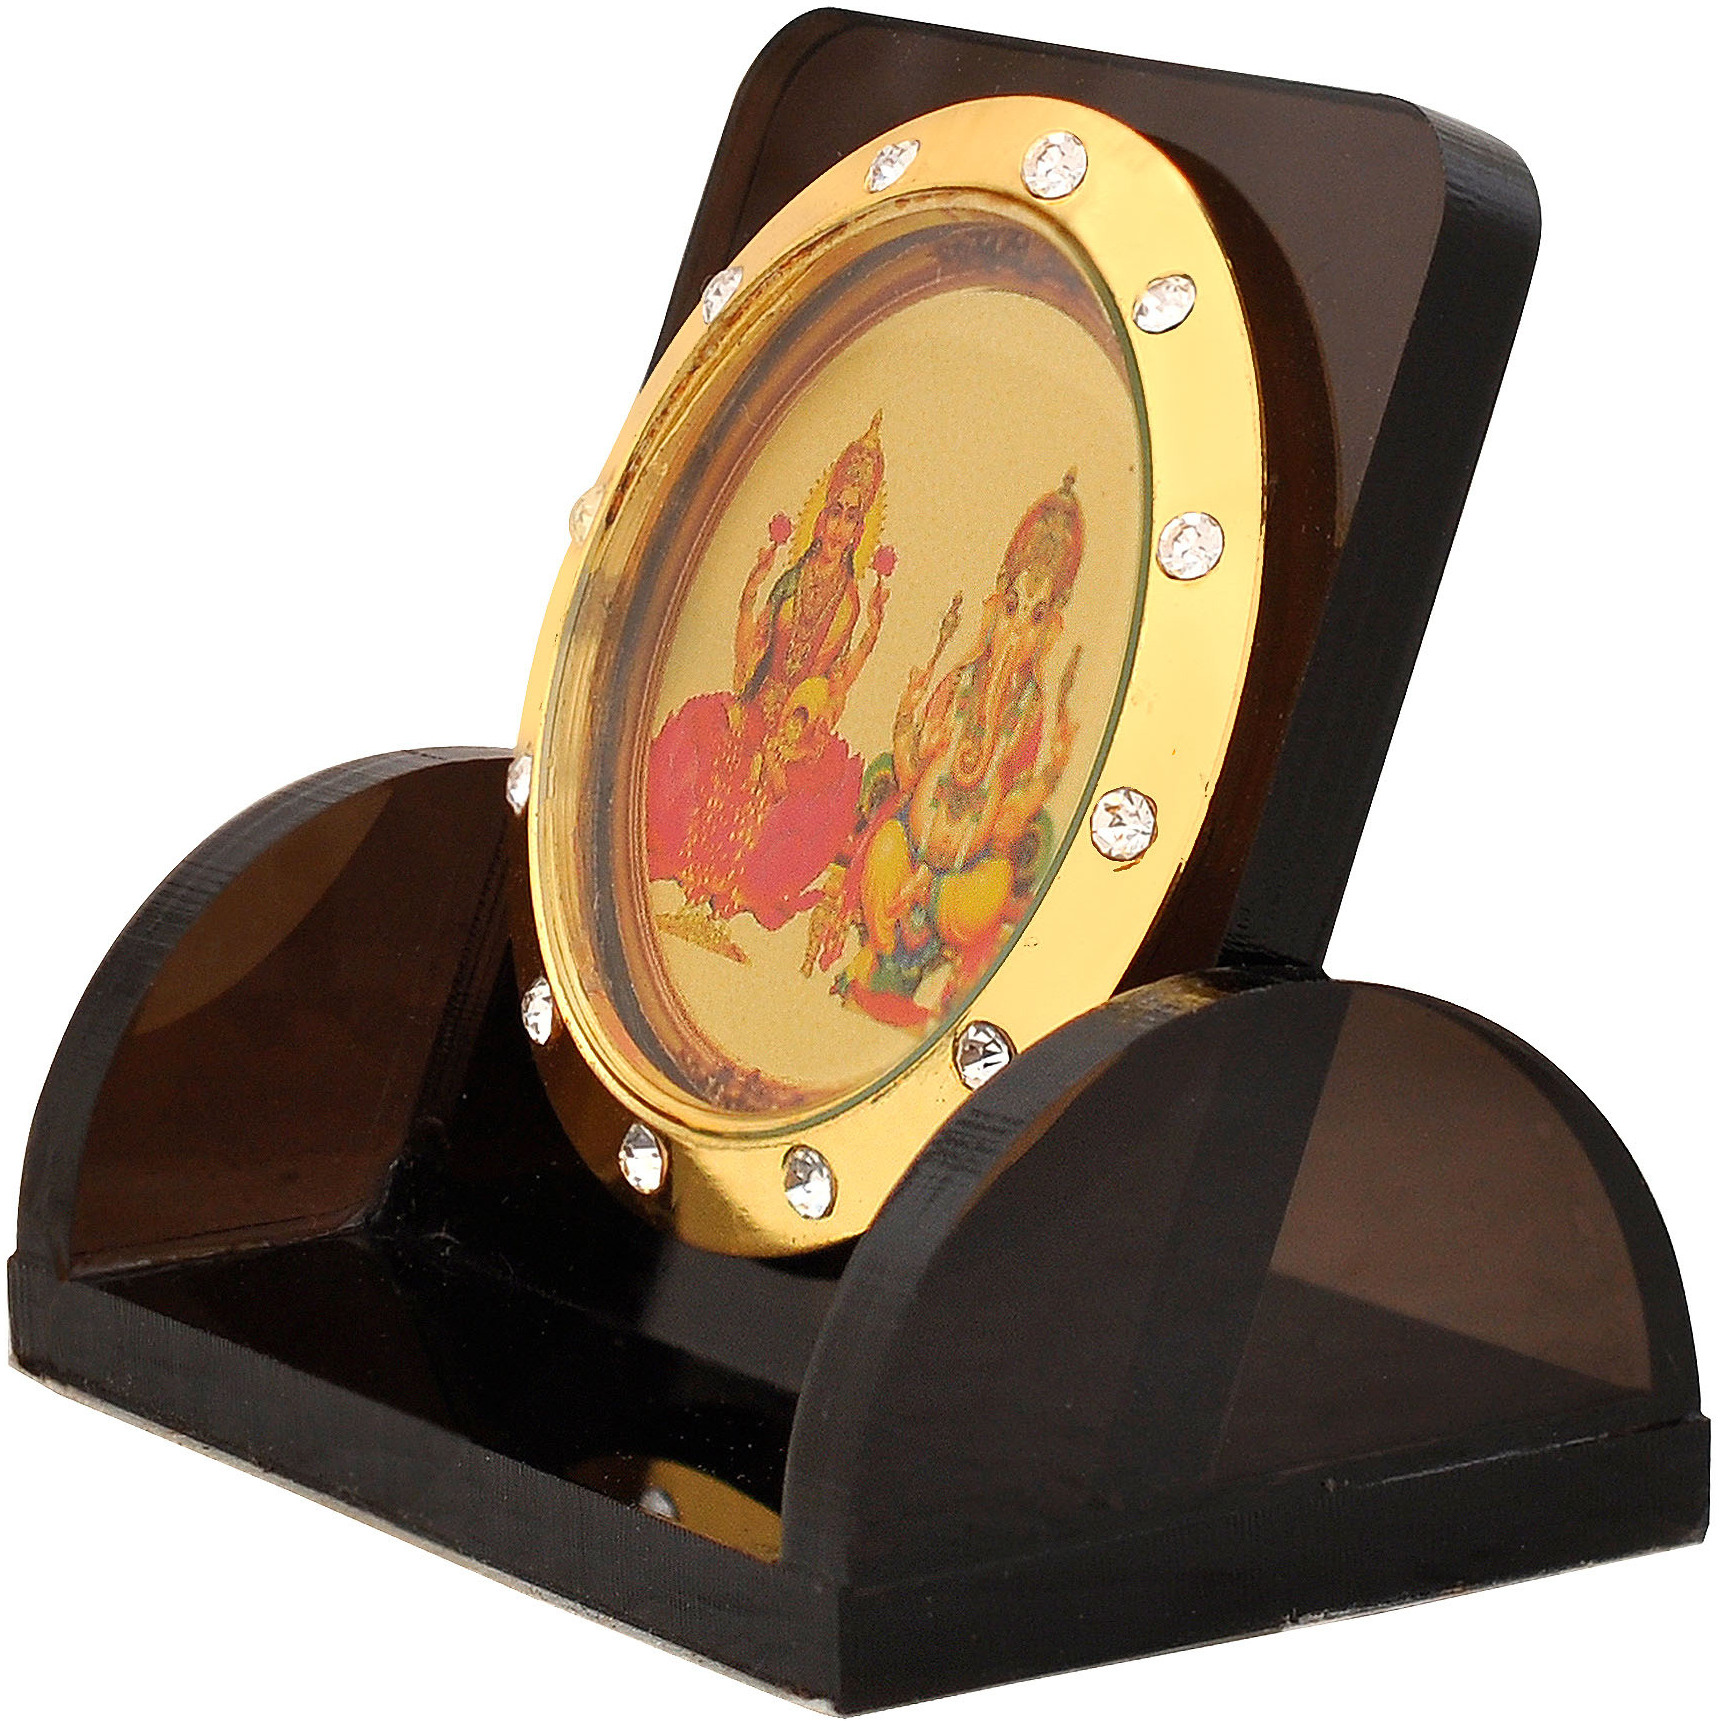 Leganza Ganesh Laxmi Idol Showpiece for Home Office - Multicolor With Black Base